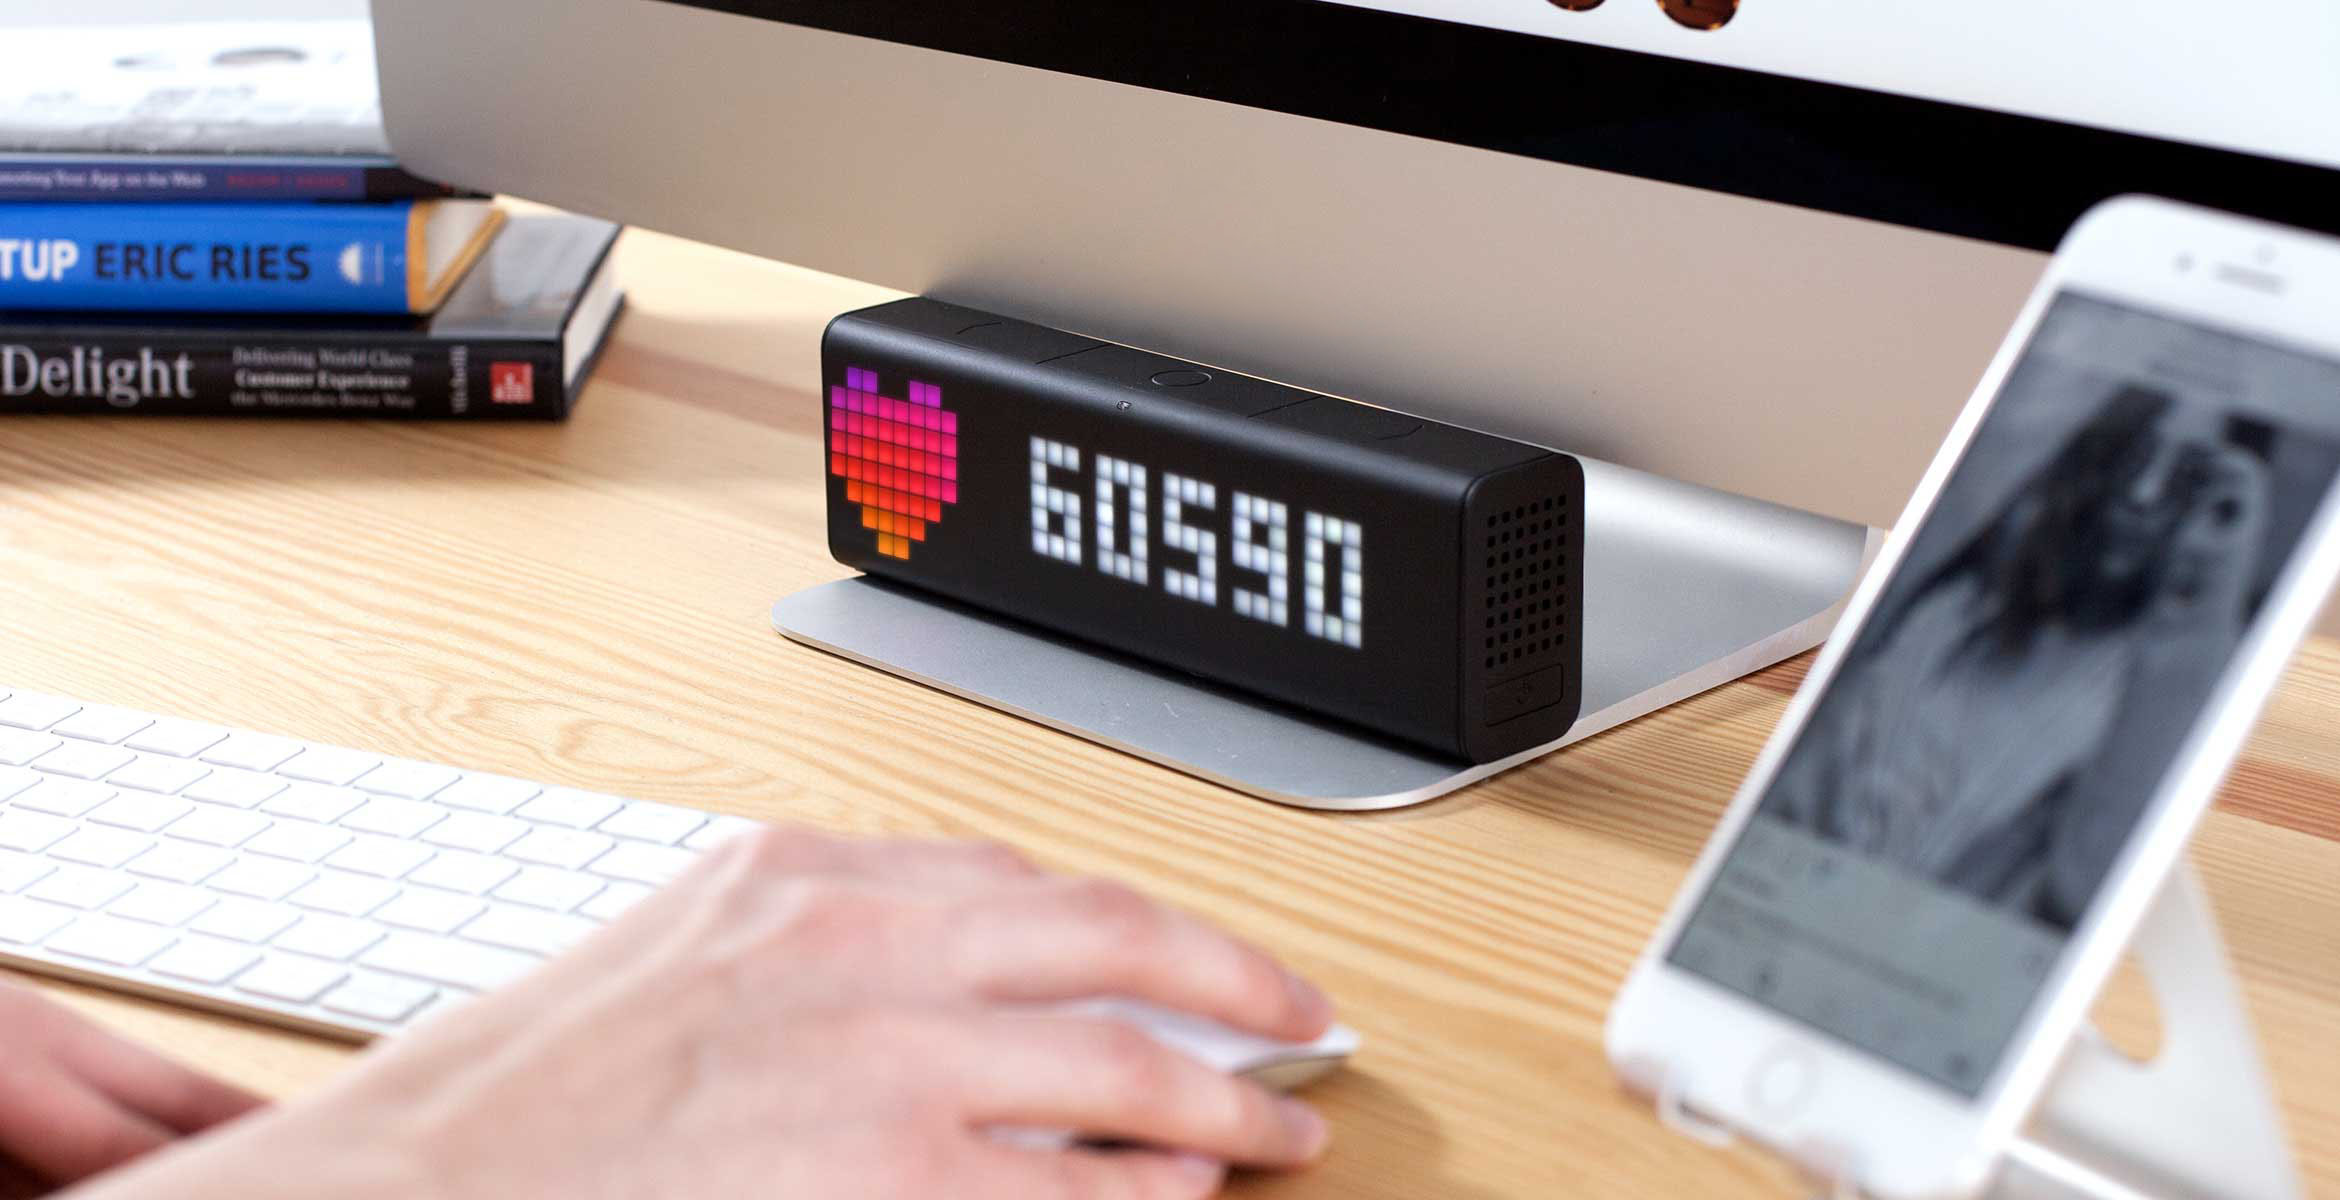 LaMetric Time smart clock complements the desk setup and displays follower count for your Instagram account